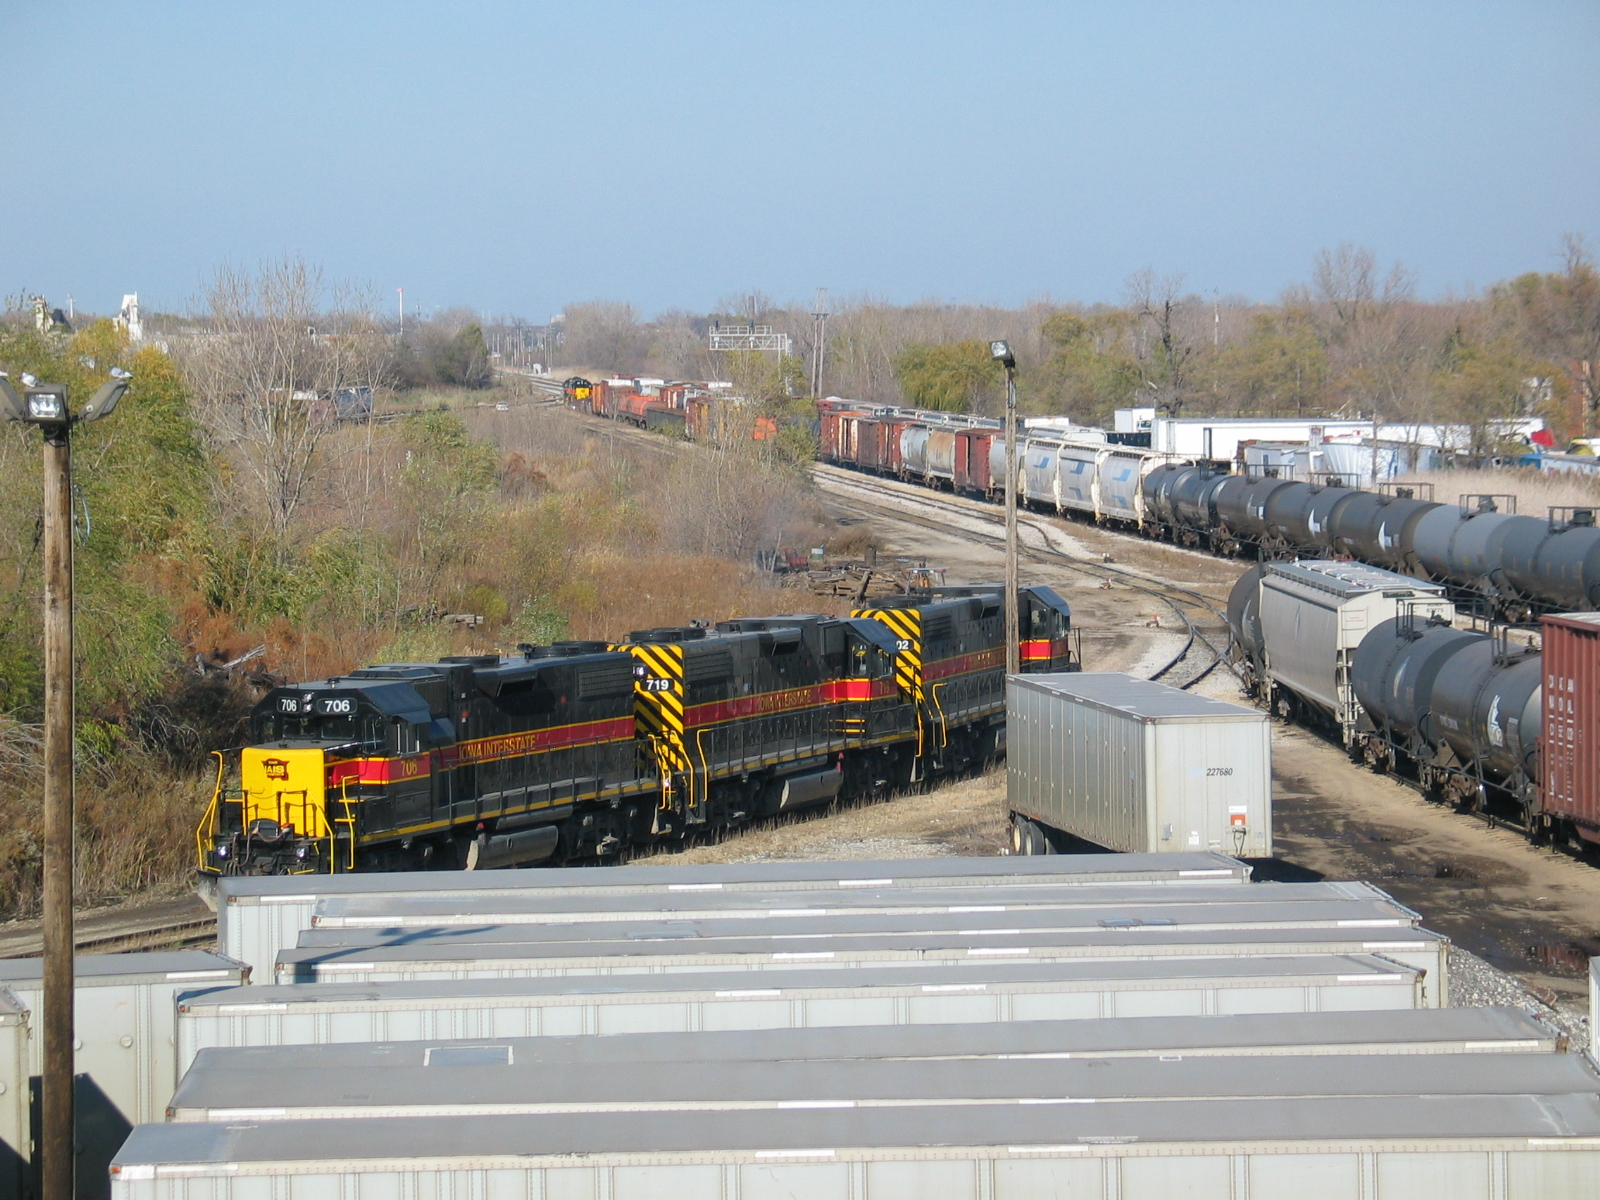 Looking north from 127th st., at the road power parked on the intermodal track.  In the background is the BI switcher power.  November 3, 2006.